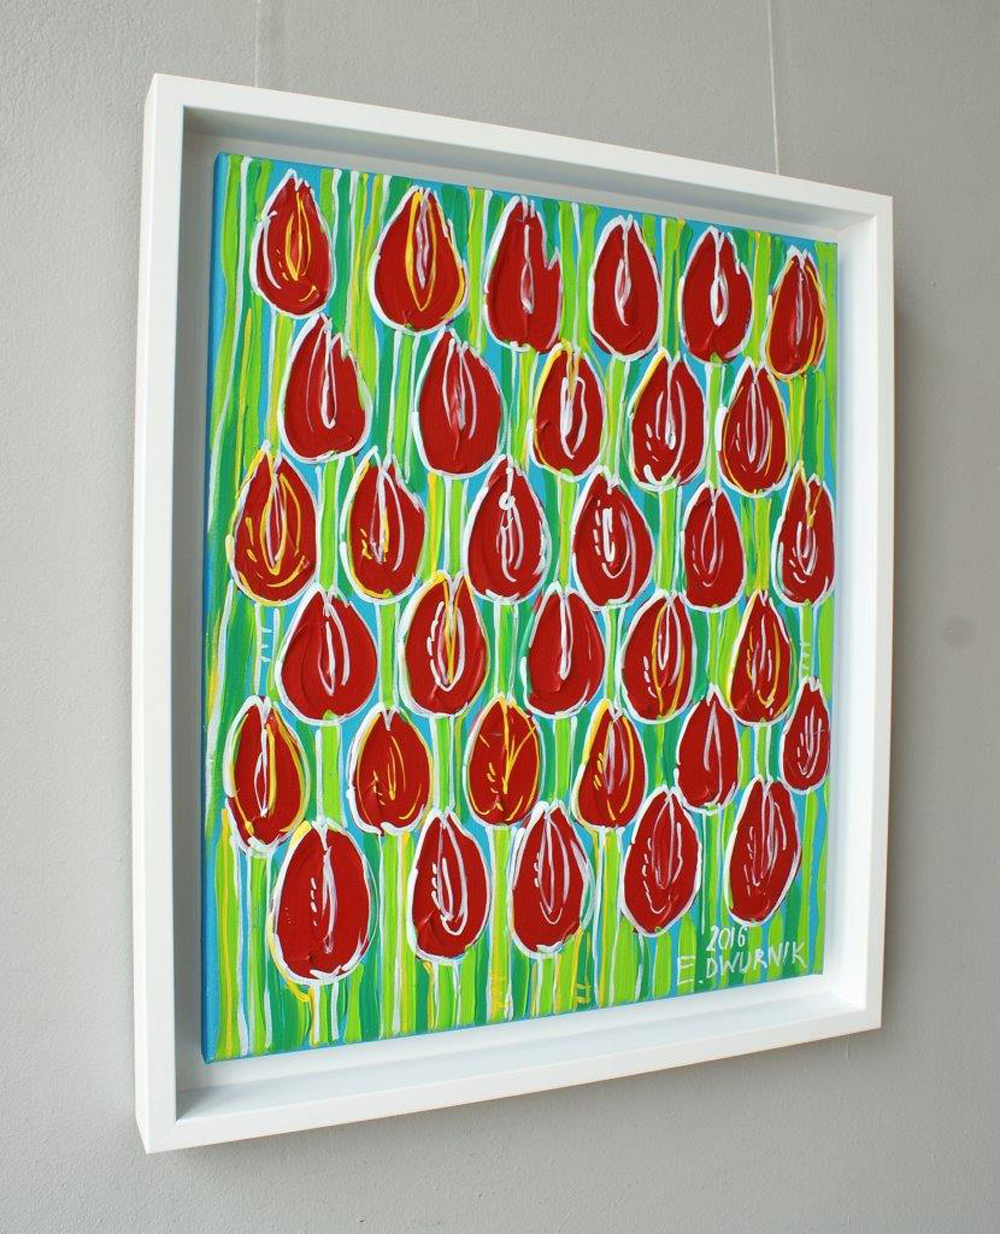 Edward Dwurnik : Red tulips